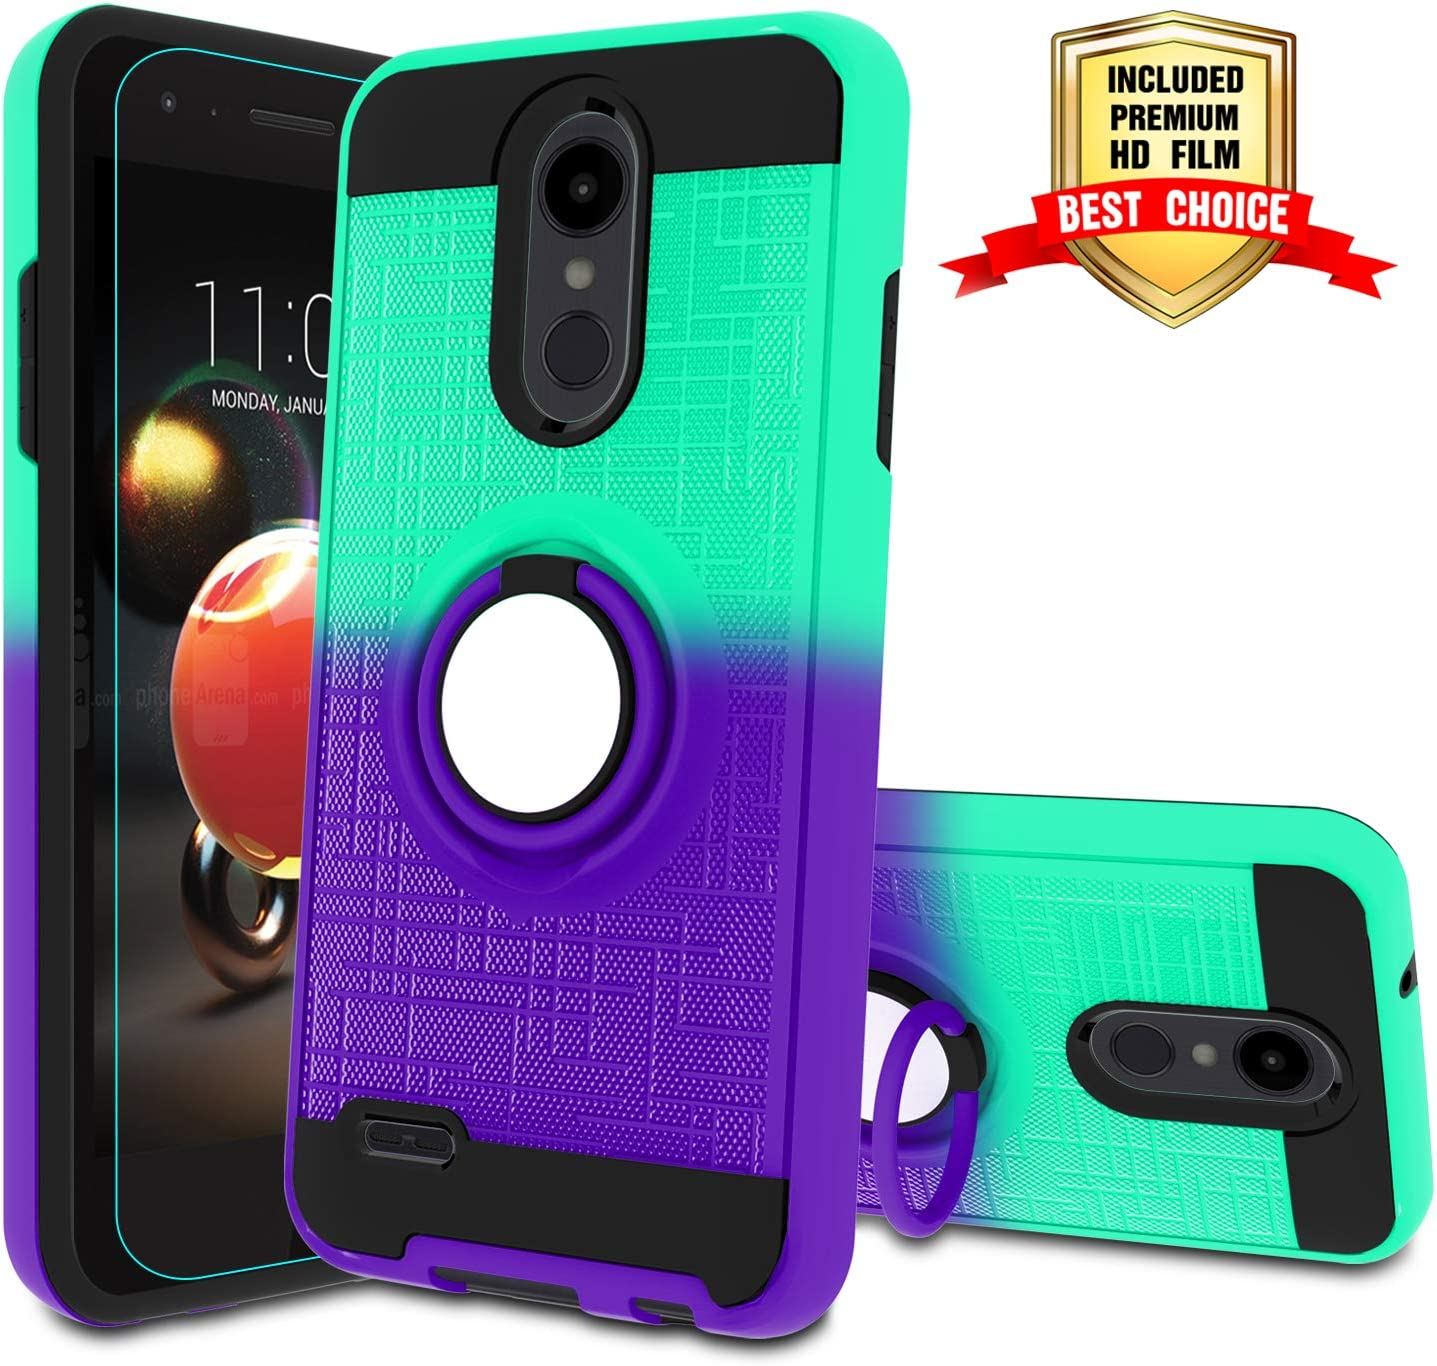 LG Tribute Empire Case,LG Aristo 3/Aristo 2/Rebel 4 LTE/Aristo 2 Plus/Phoenix 4/Tribute Dynasty/Zone 4 Phone Cases with HD Screen Protector, Atump Magnetic Car Mount Ring Case for K8 2018 Mint/Purple